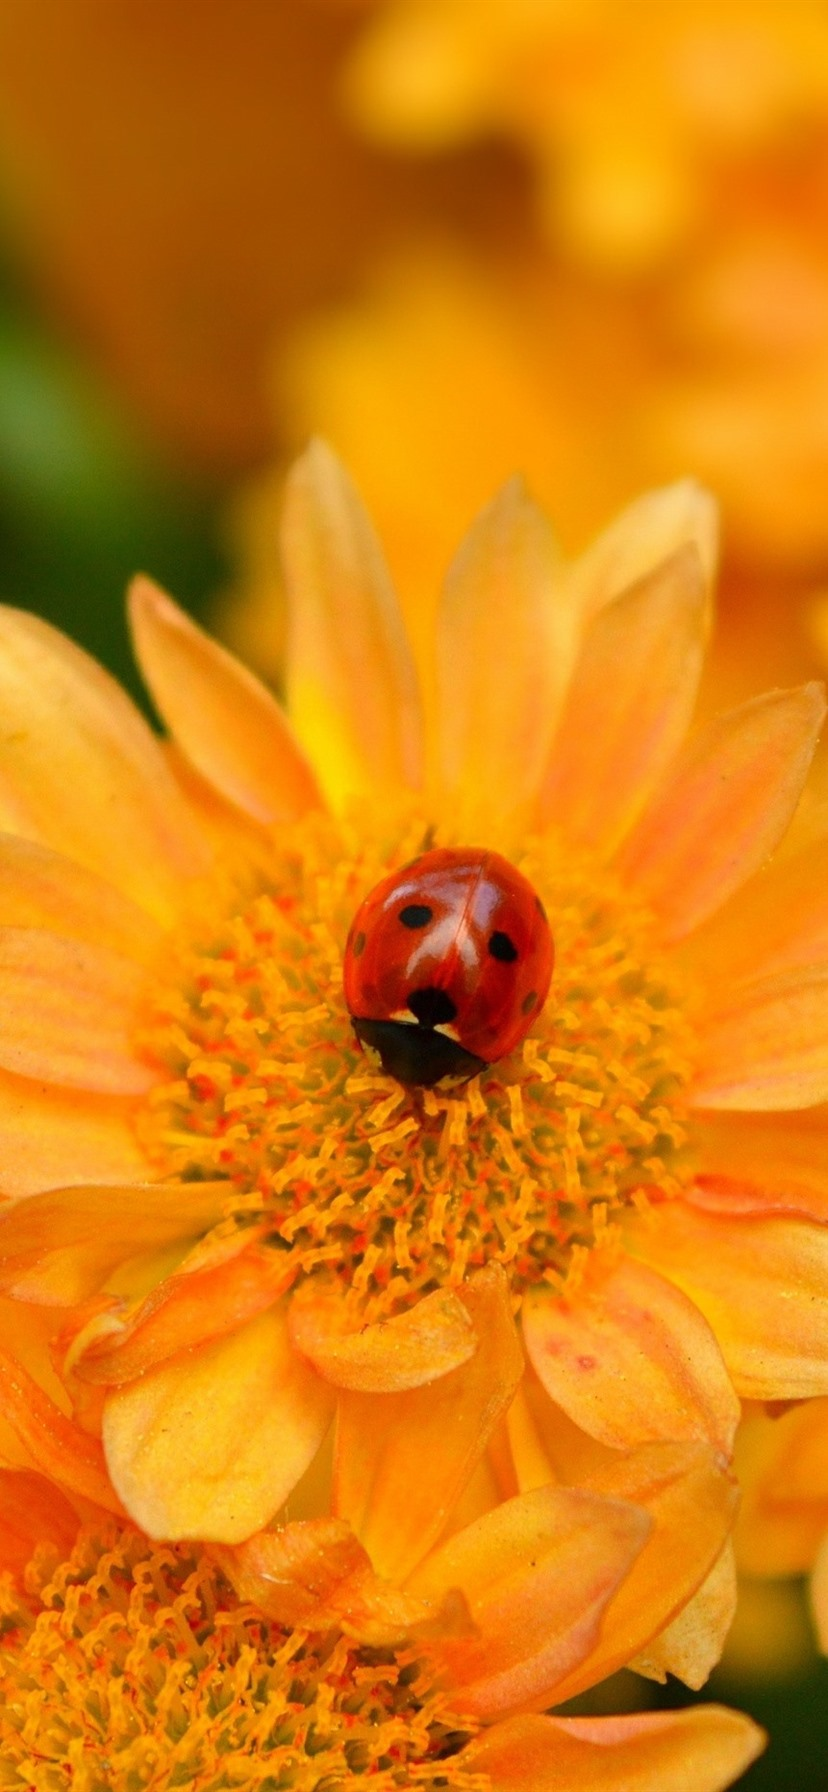 Yellow Flowers Ladybug 828x1792 Iphone 11 Xr Wallpaper Background Picture Image